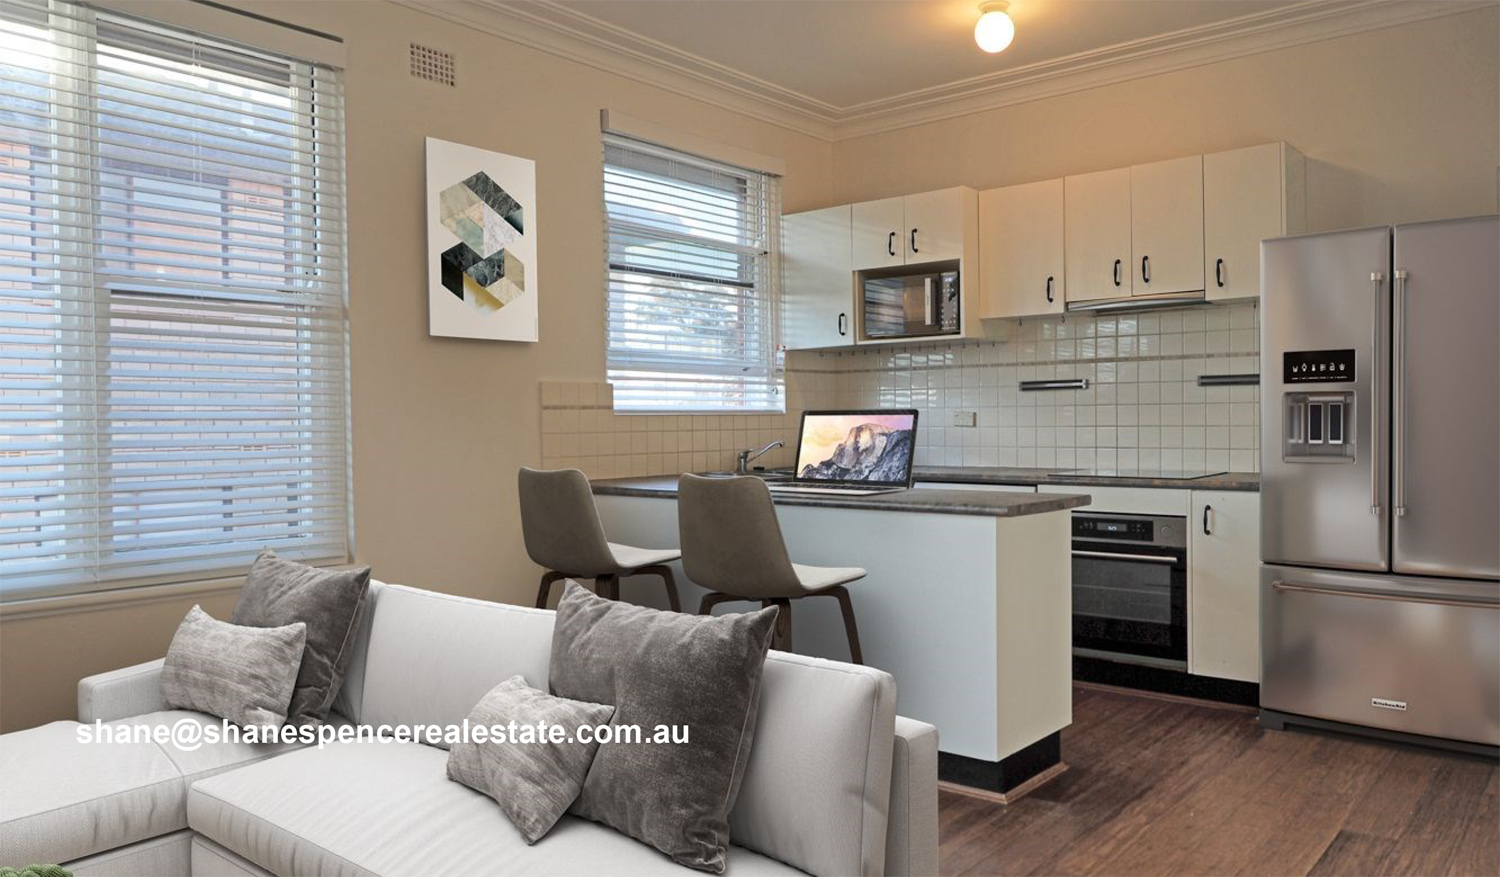 Queenscliff Manly unit for lease rent Shane Spence Real Estate